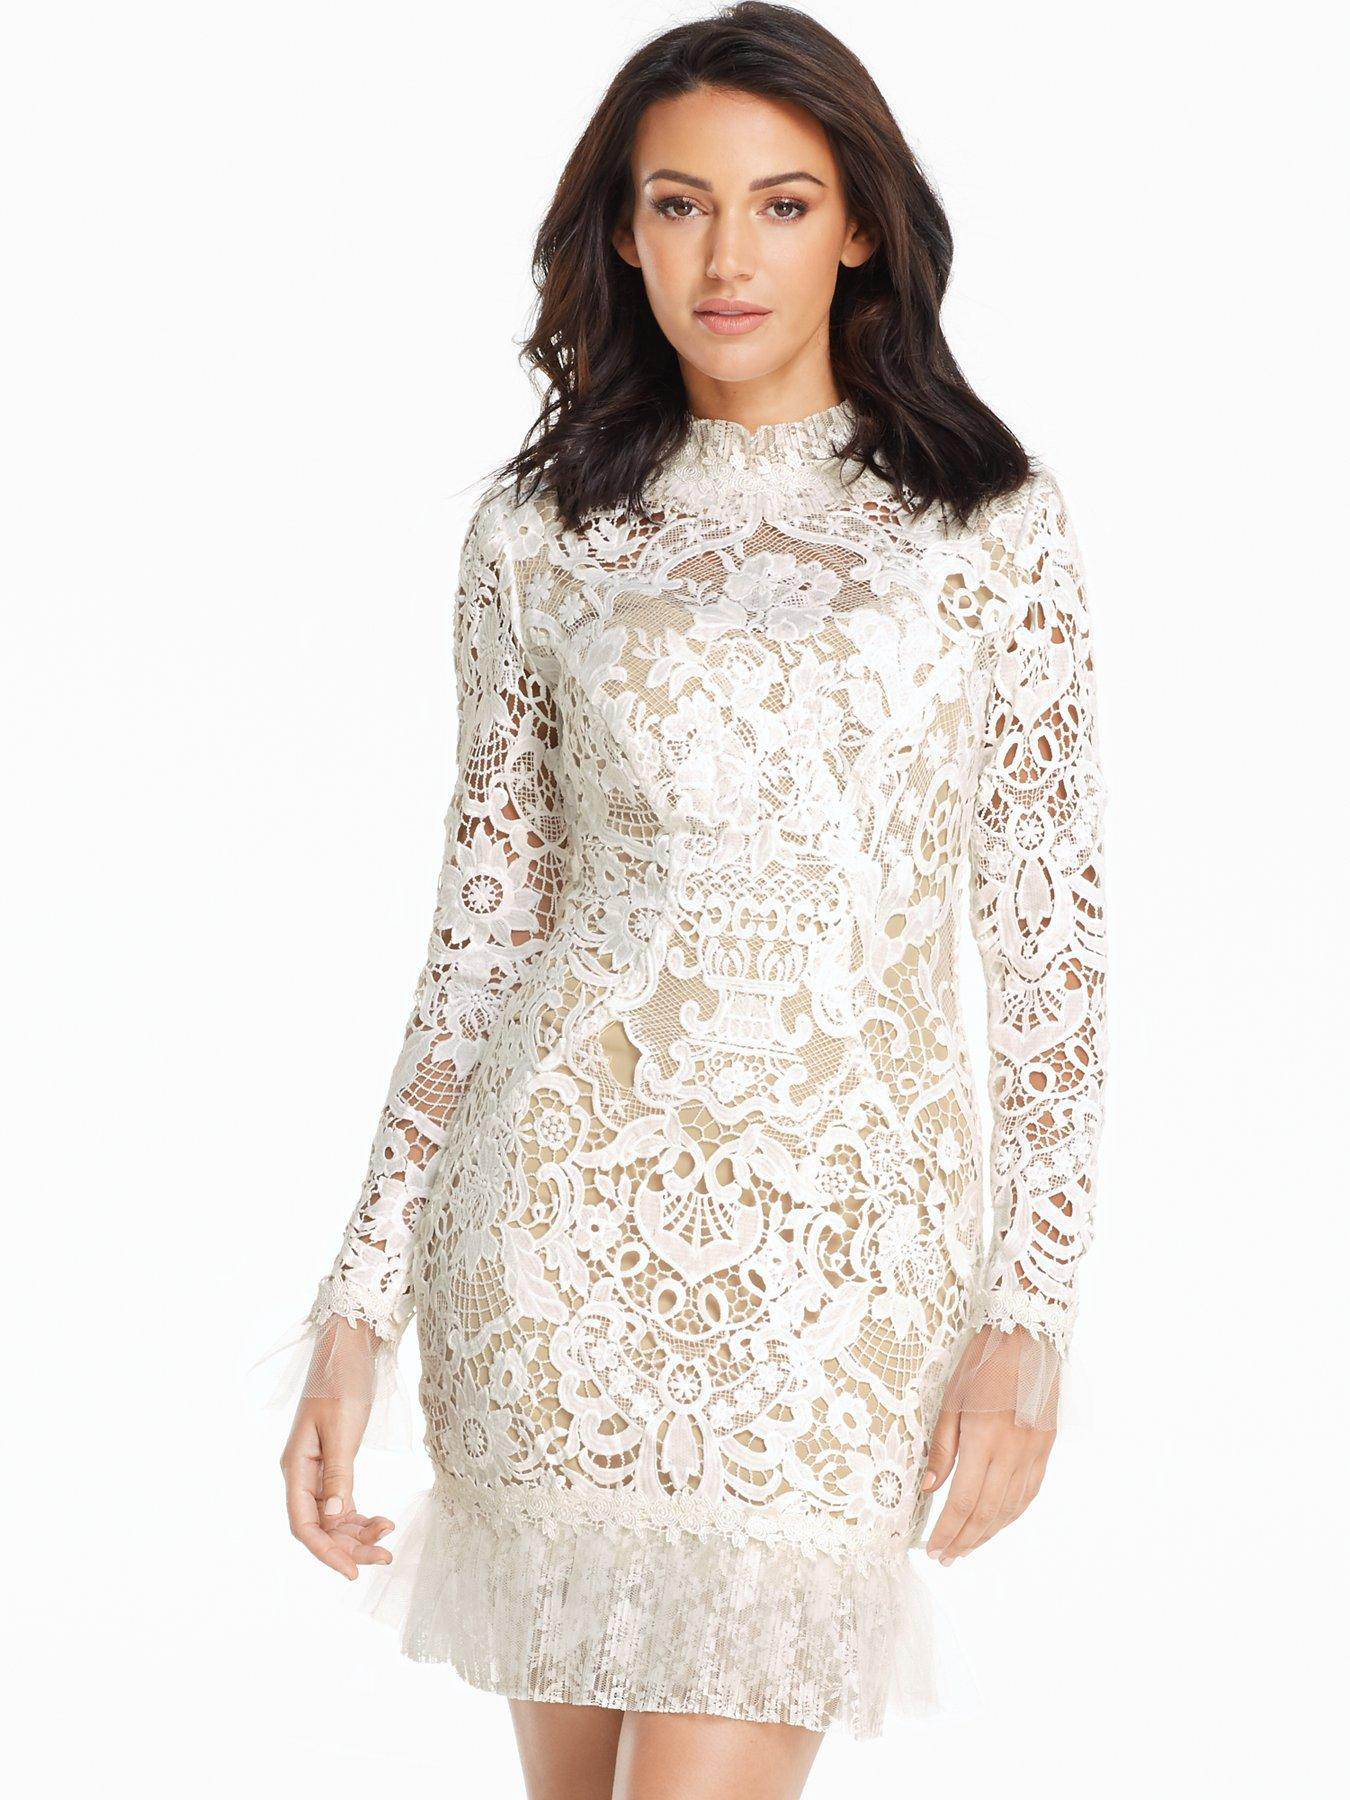 fa1ea045 Cyber Monday Dresses: The Very Best Deals - Look Magazine